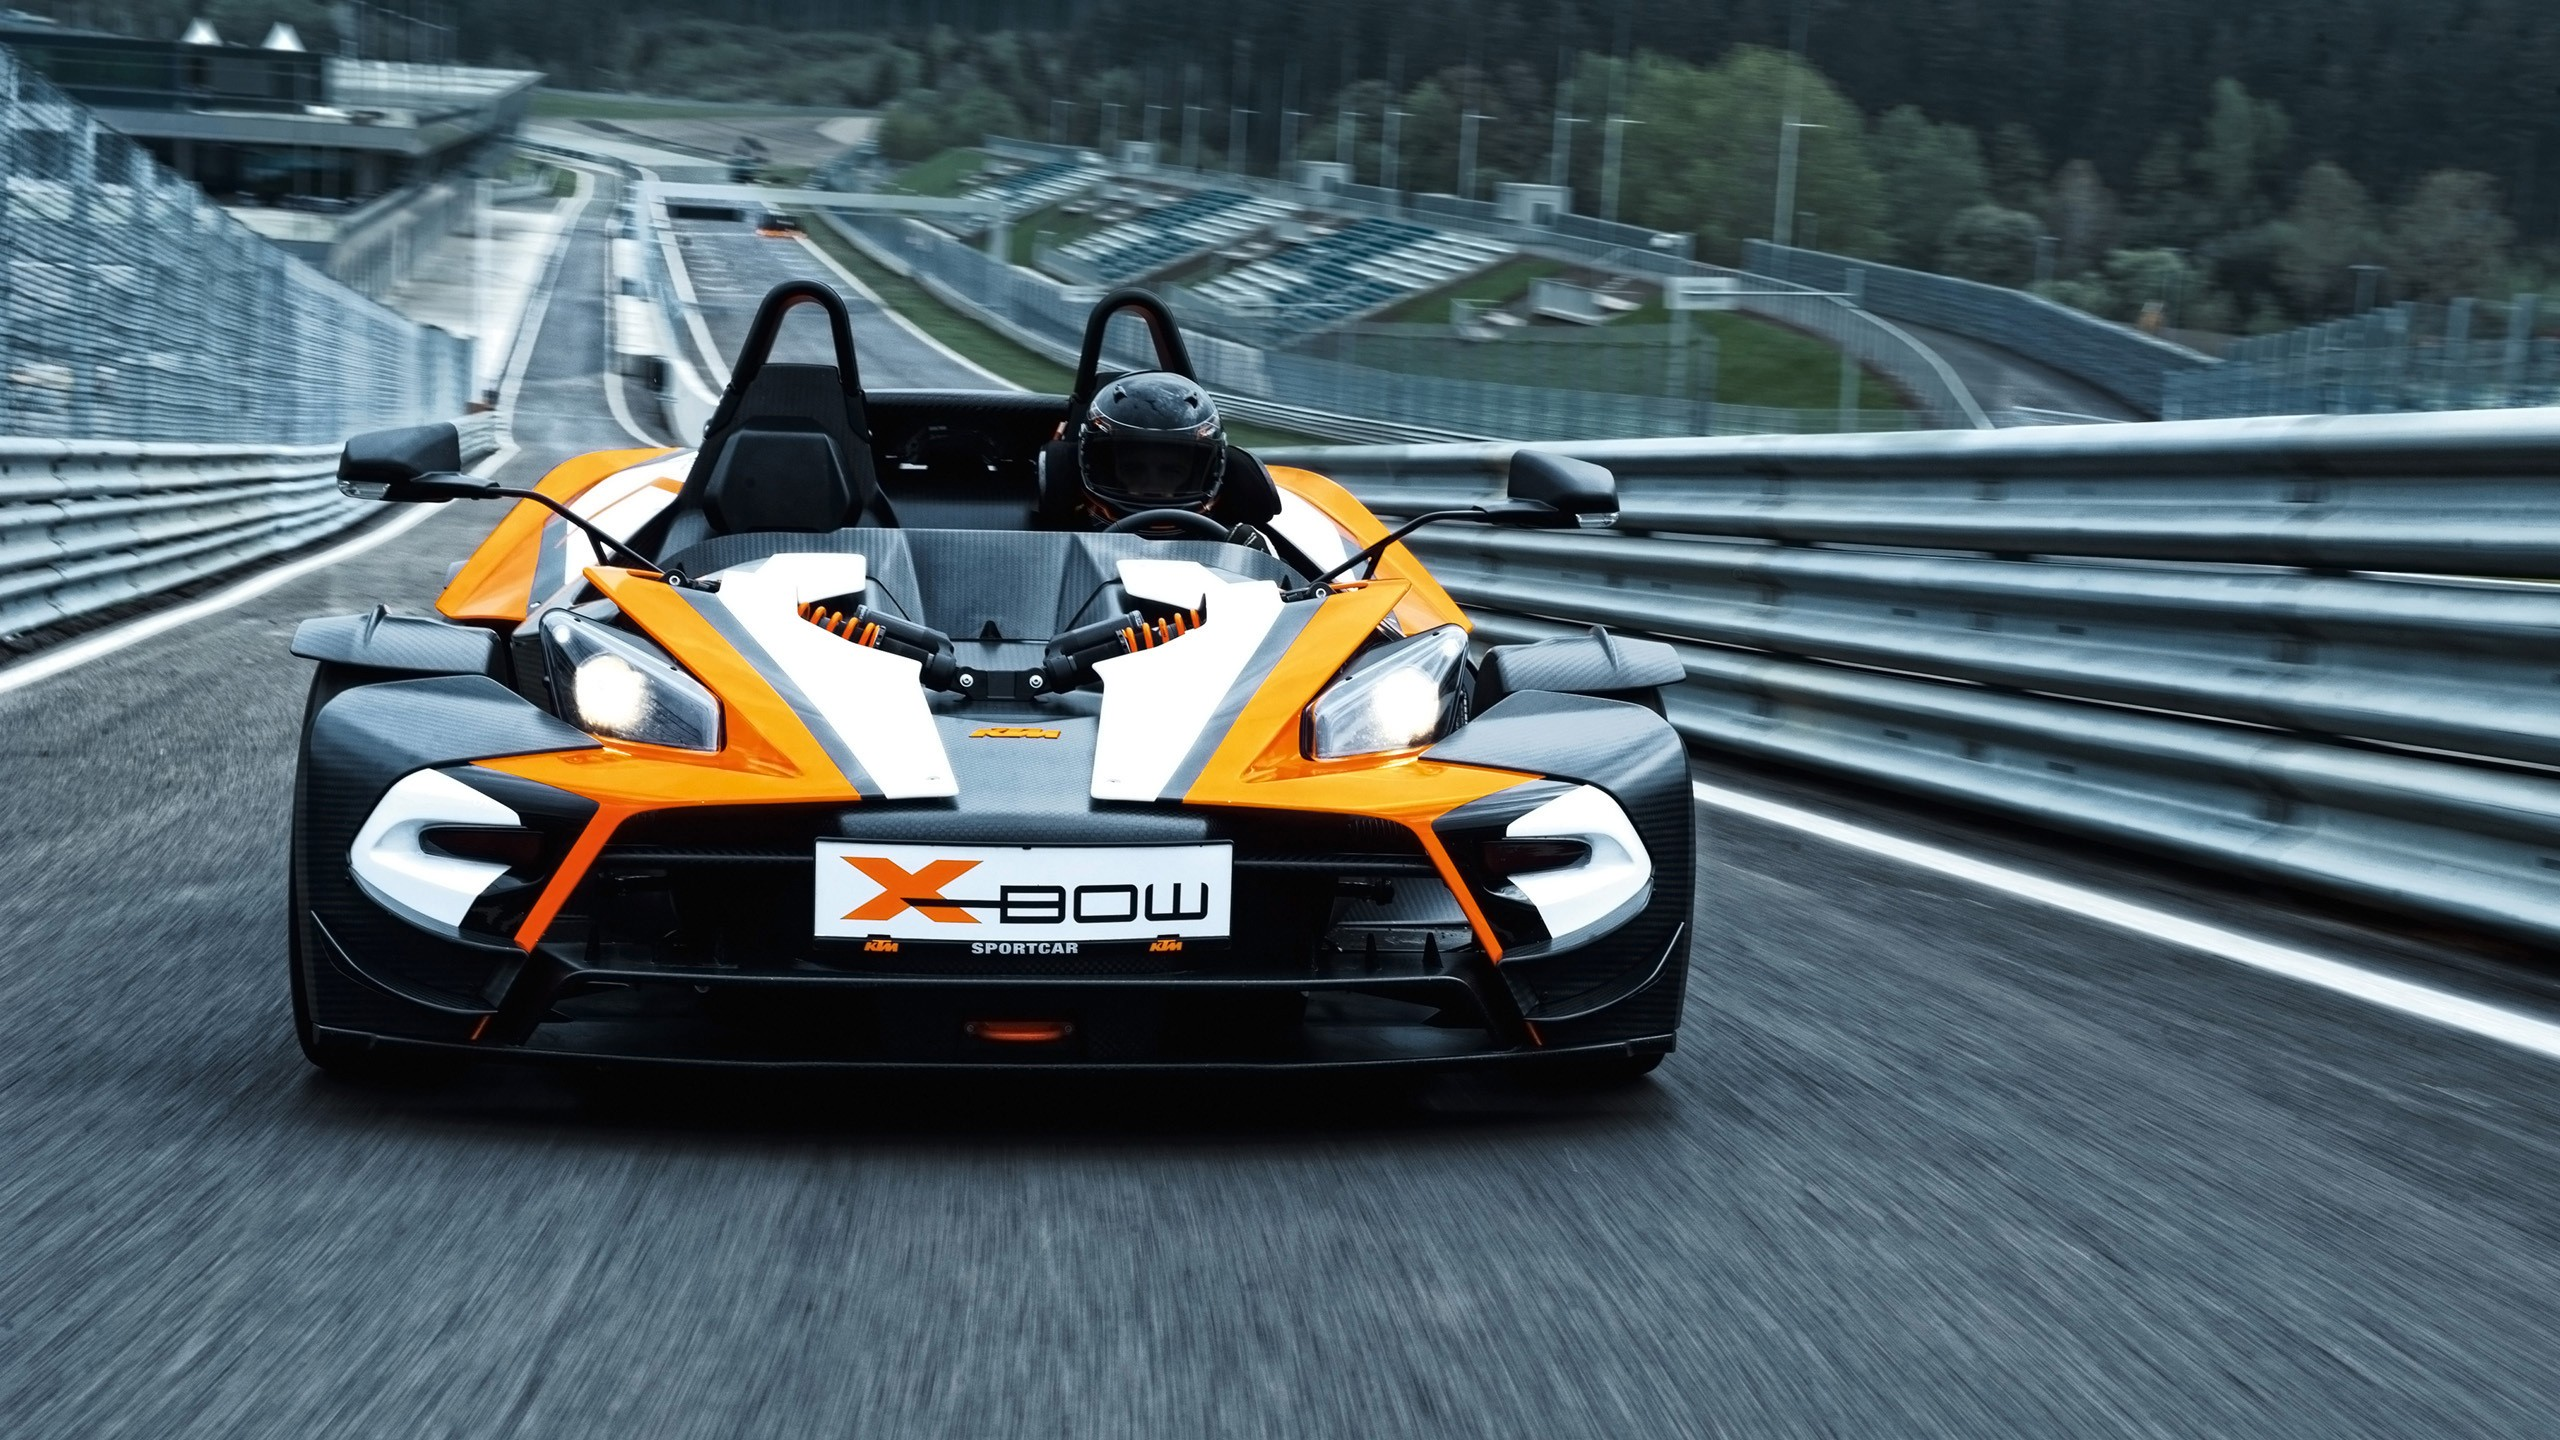 2014 ktm x bow r wallpaper hd car wallpapers id 4176 - X bow ktm ...